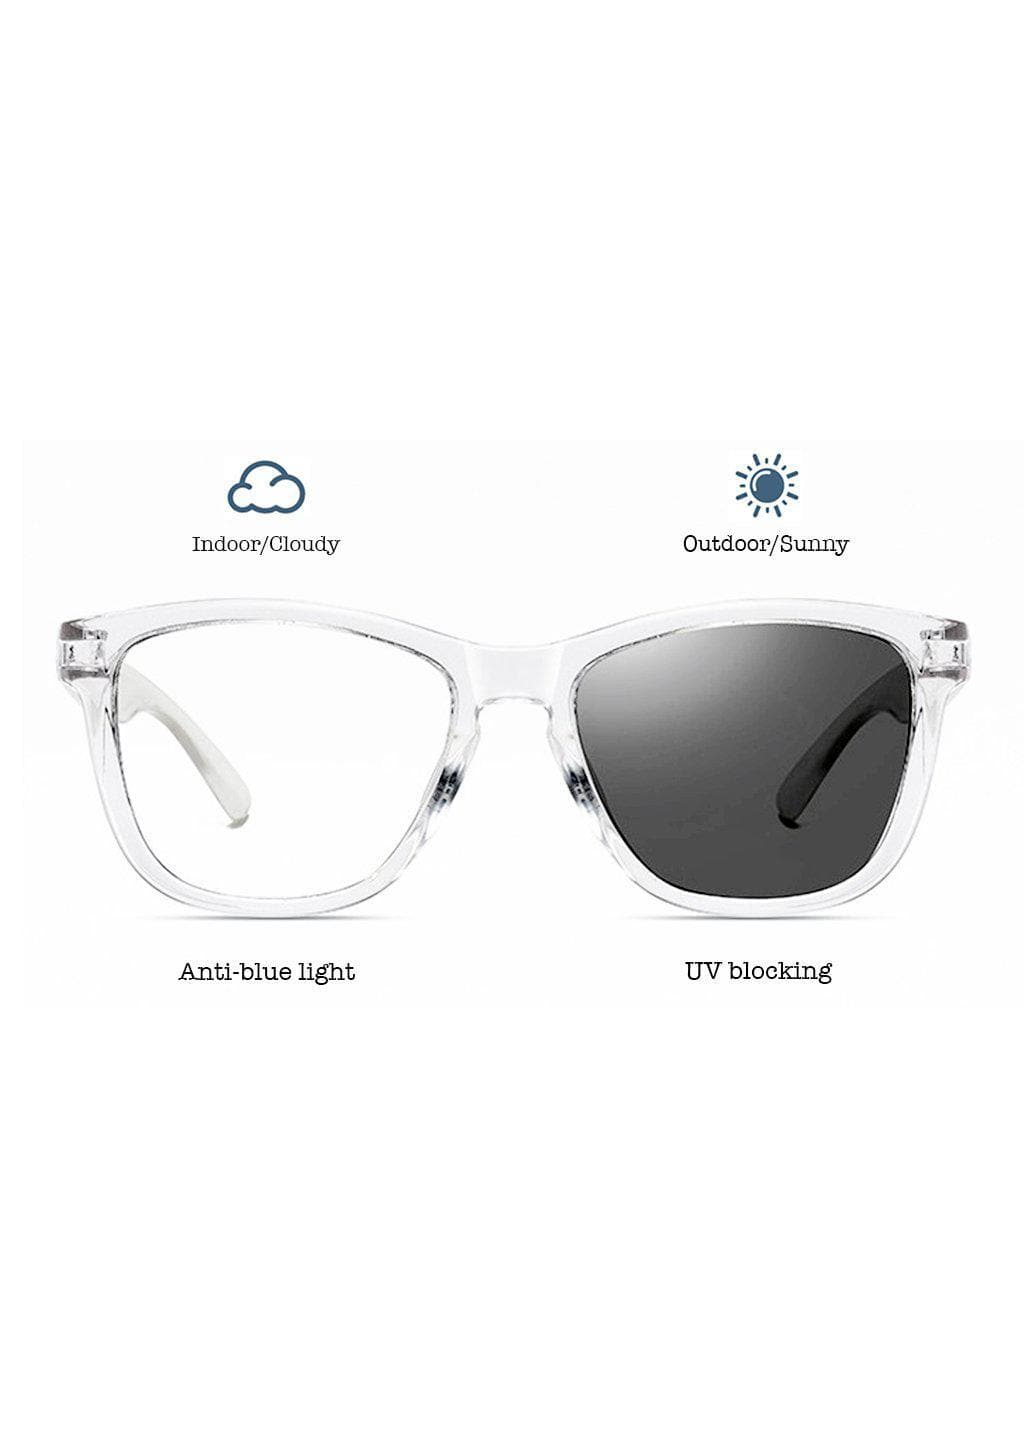 Our Photochromic anti bluelight transparent glasses that work like two in one. Turns dark in the sun and clear inside.